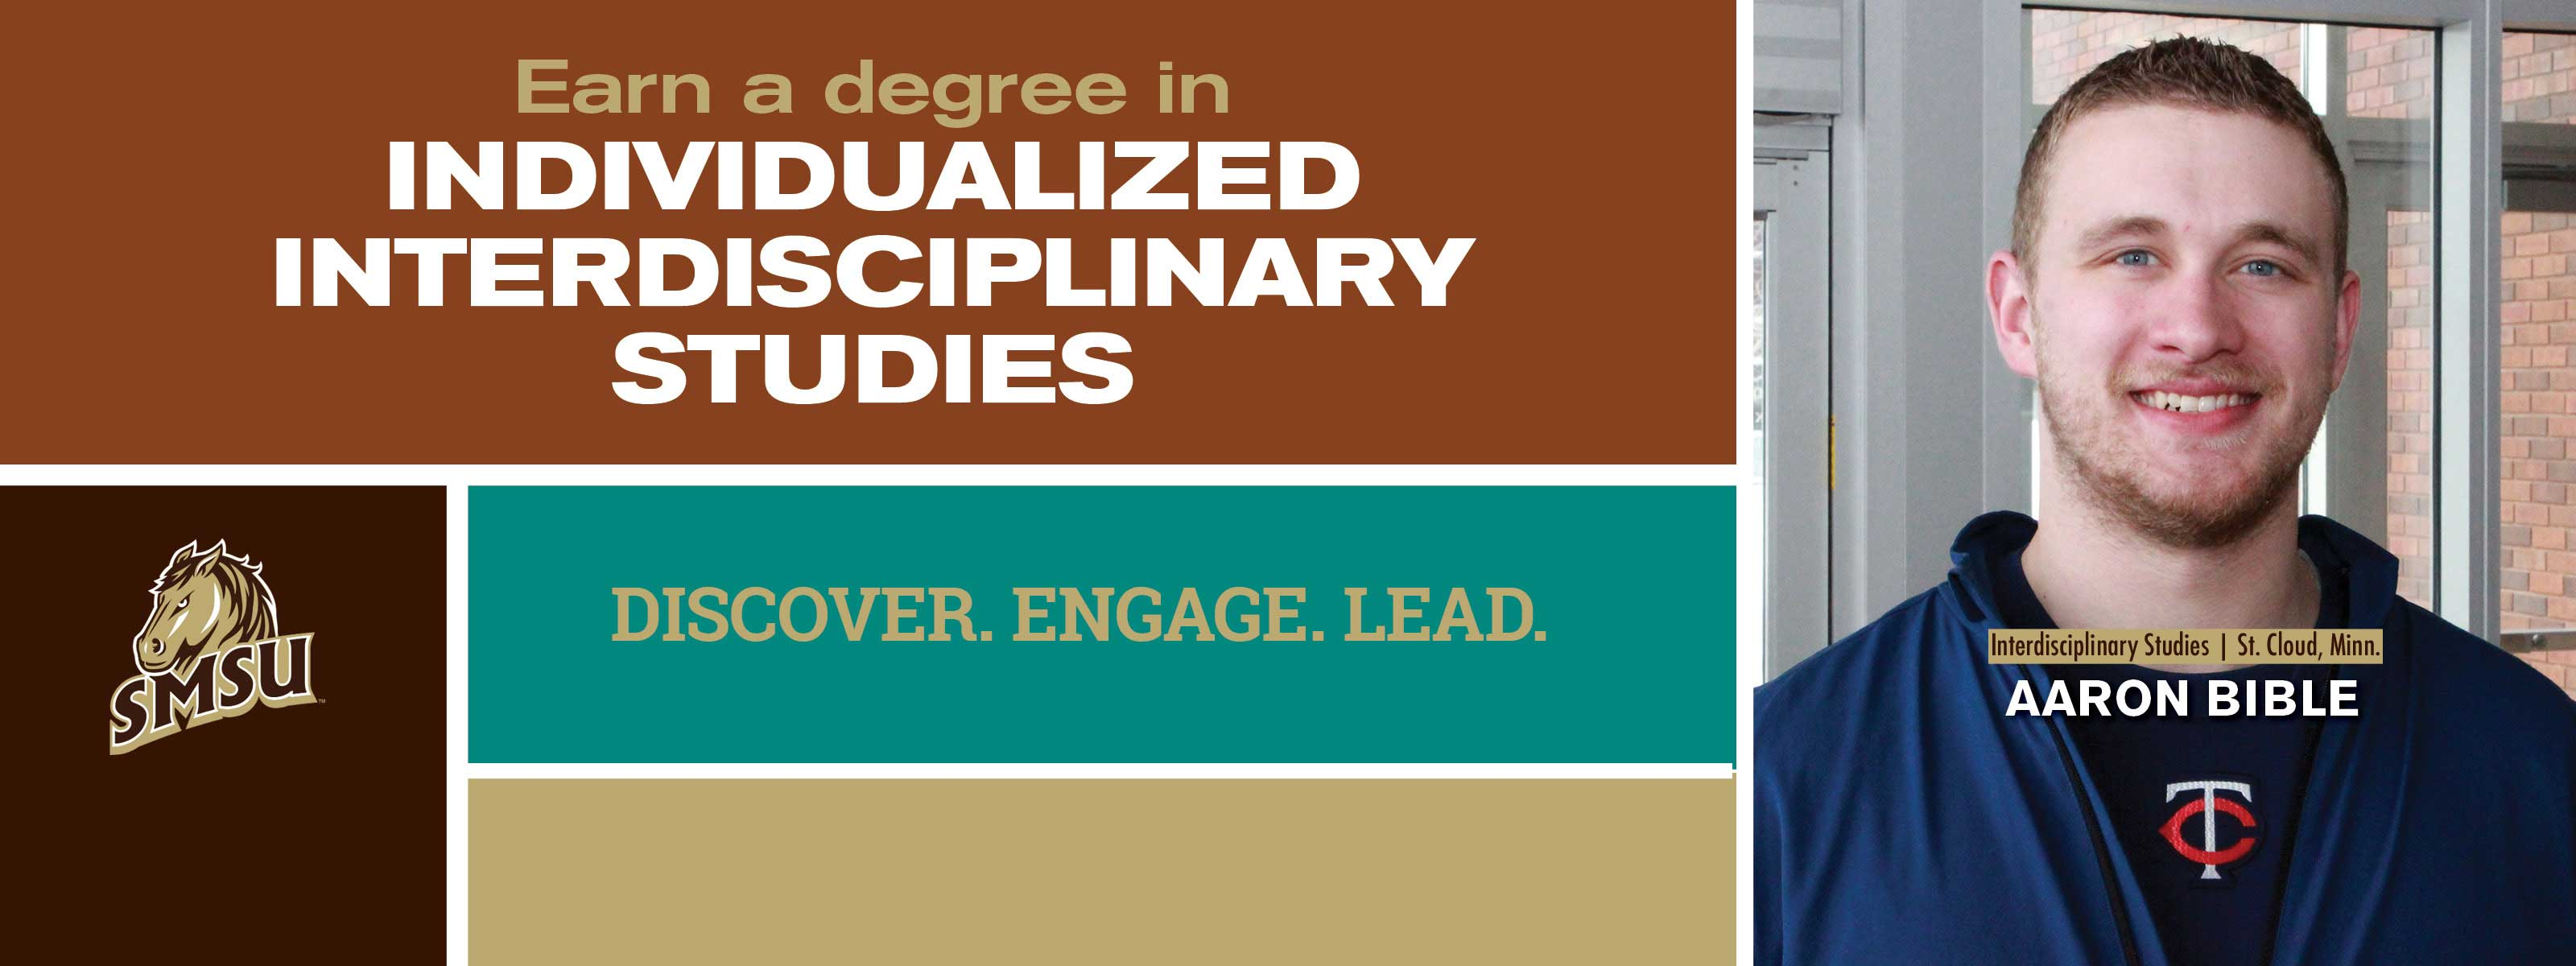 Earn A Degree In Individualized Interdisciplinary Studies - Discover. Engage. Lead.